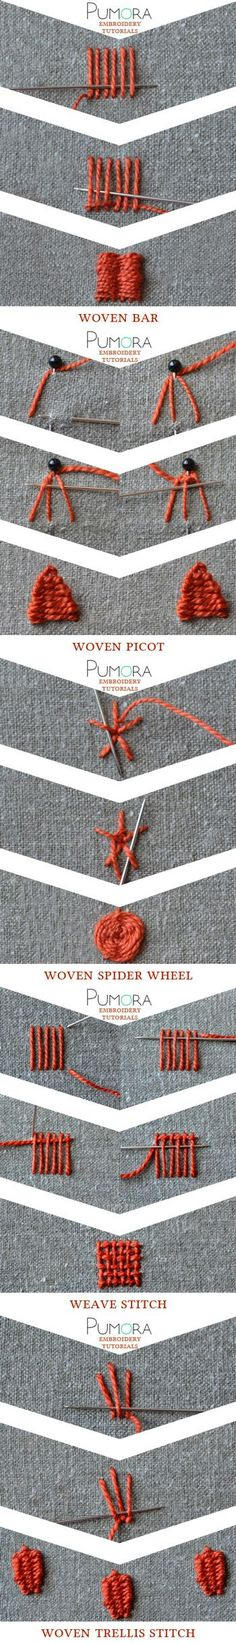 Pumras embroidery stitch lexicon: weave stitch and variations